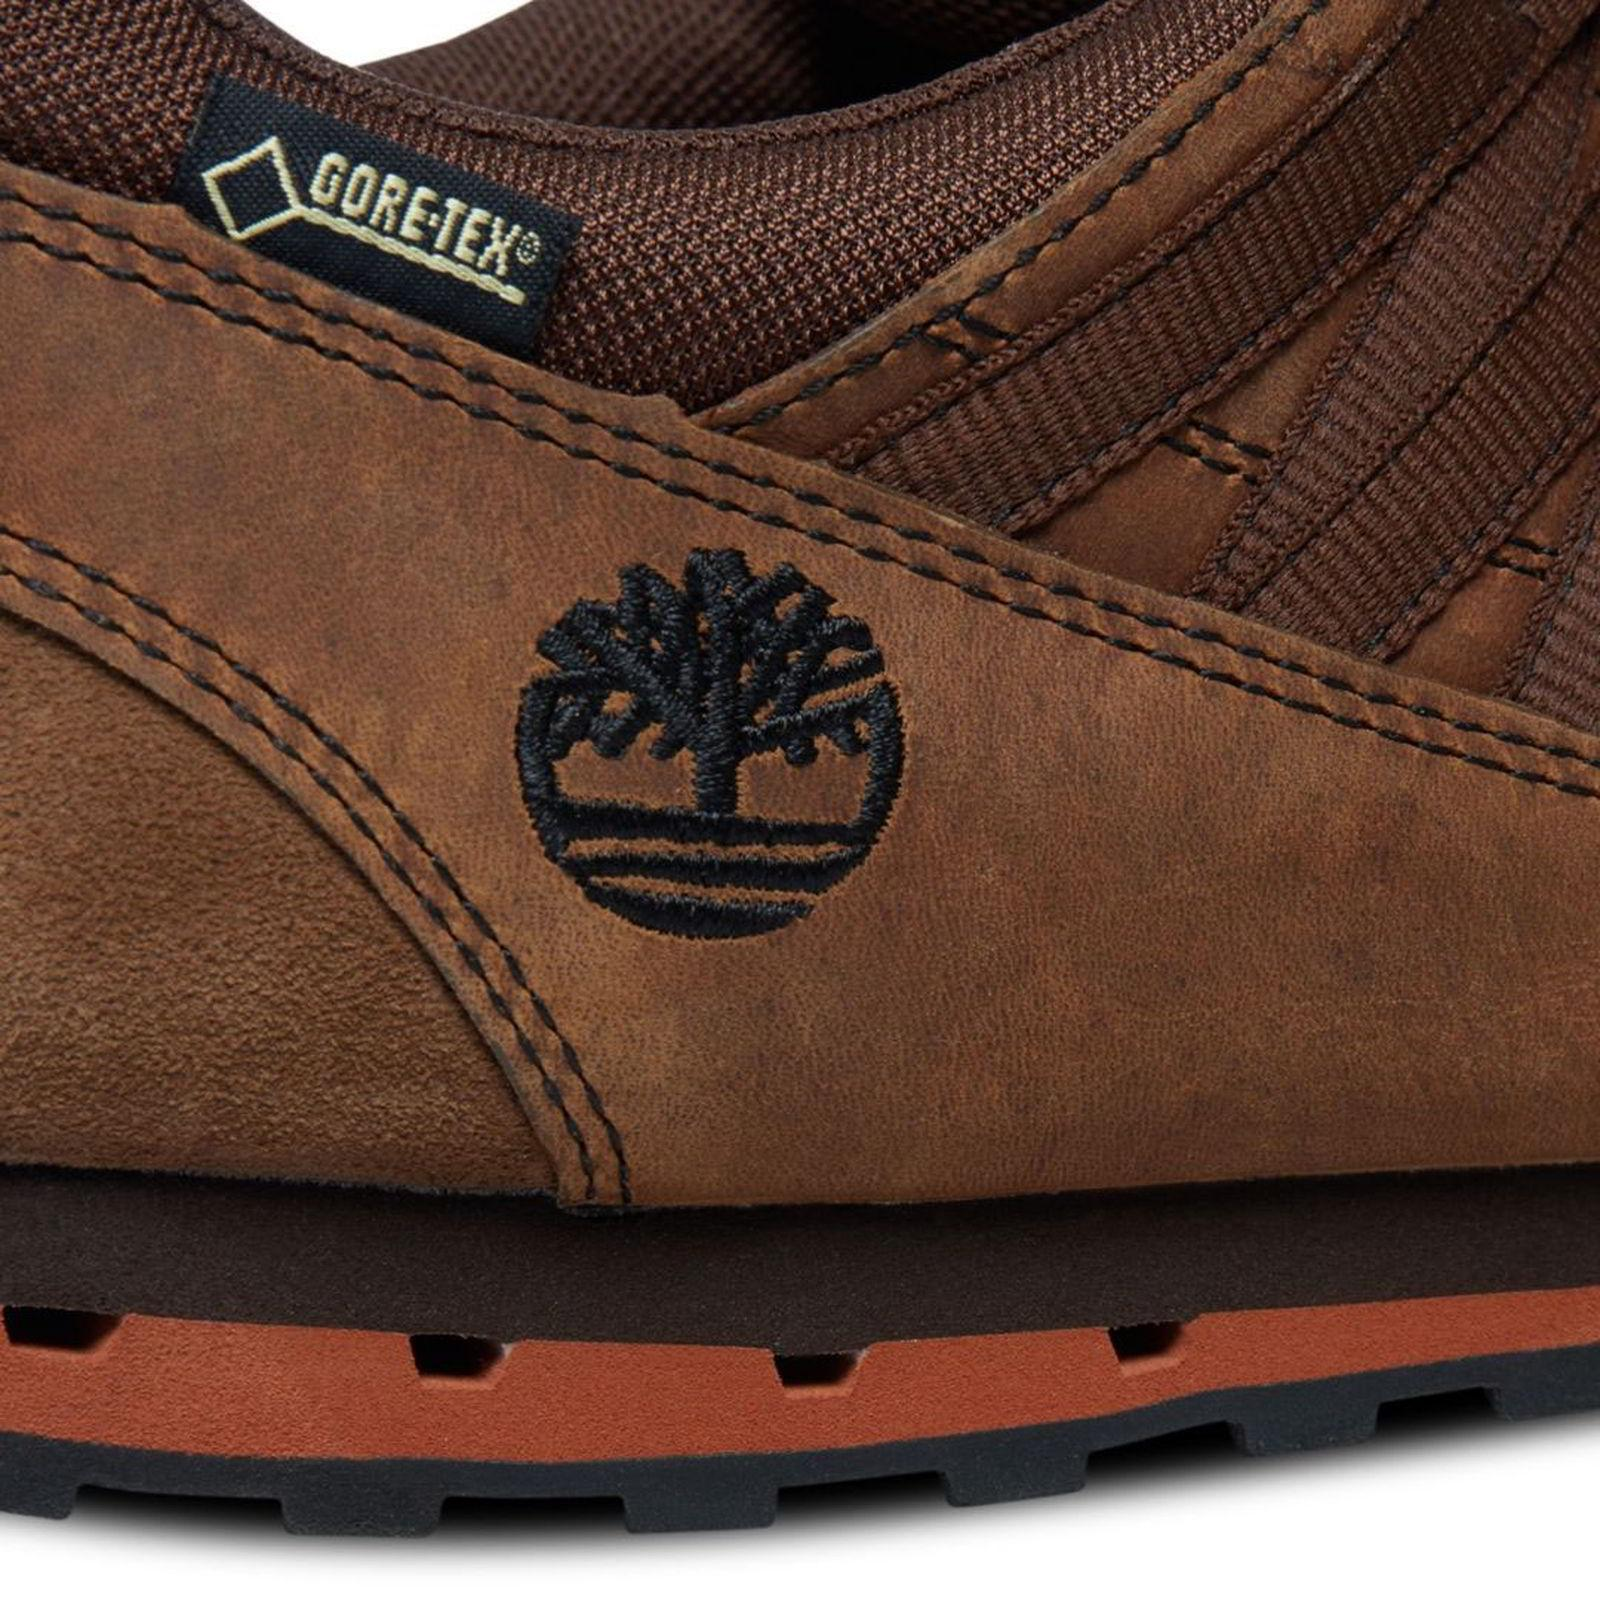 top brands thoughts on coupon codes Greeley Approach Low Leather With Gore-tex Membrane Shoes